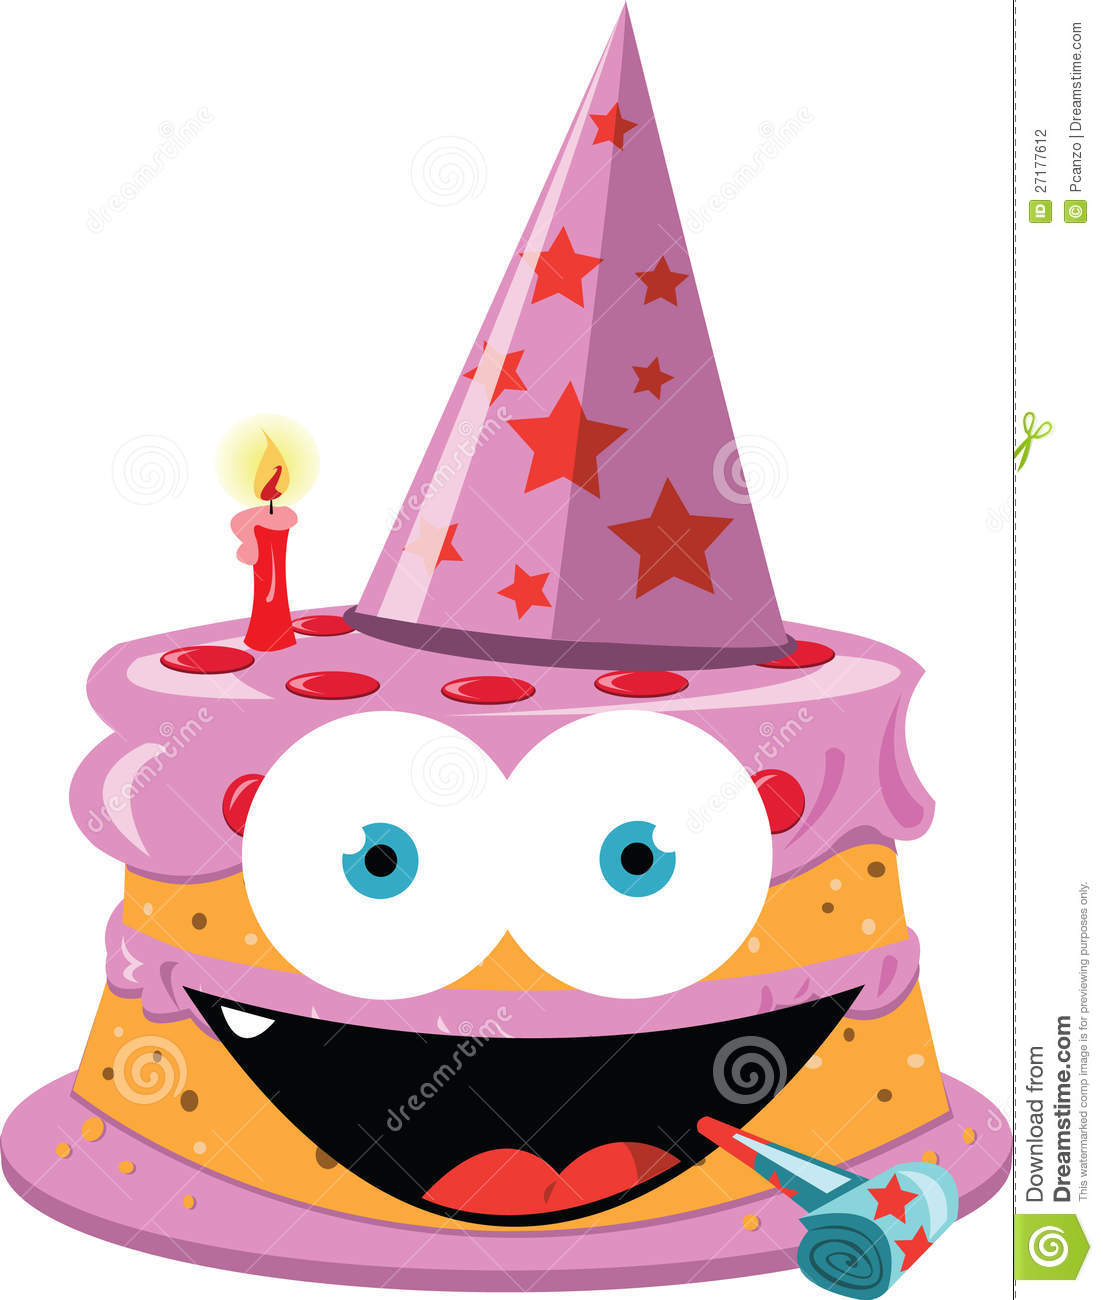 Funny Birthday Cake Clipart.